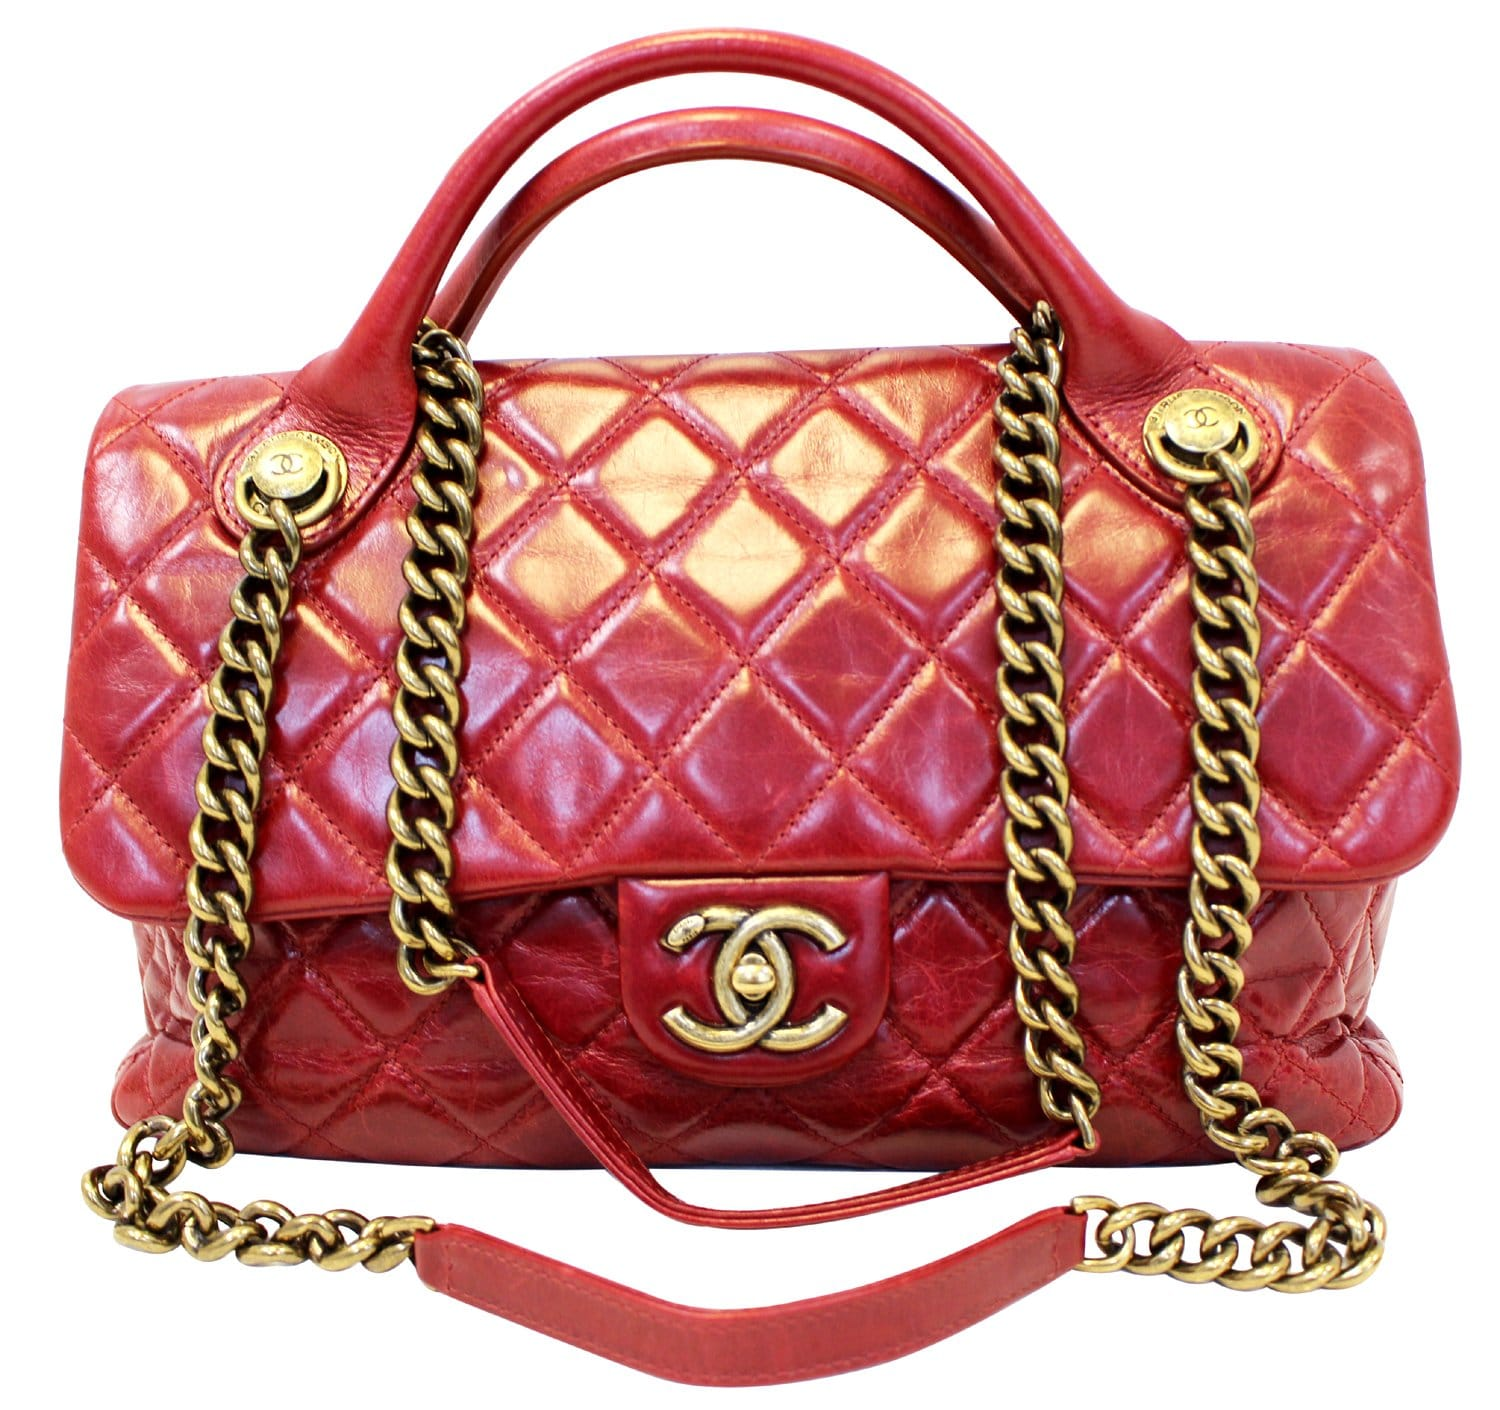 982a12ddd446 CHANEL Red Quilted Glazed Calfskin Leather Large Castle Rock Top Handle Bag